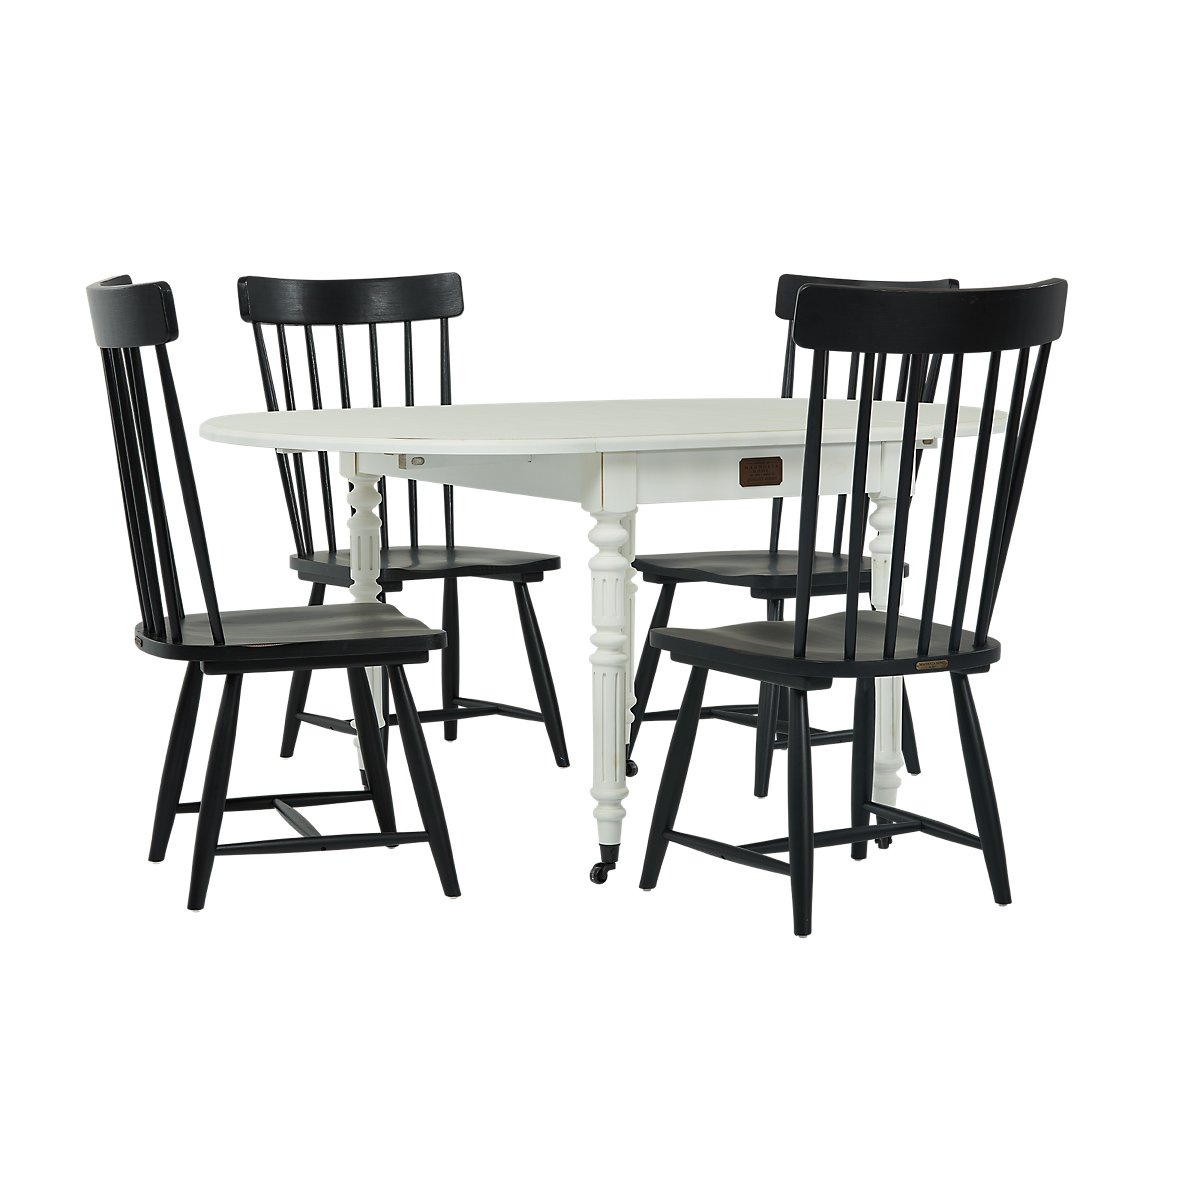 Fresh City Furniture: Windsor Black Table & 4 Wood Chairs LG68